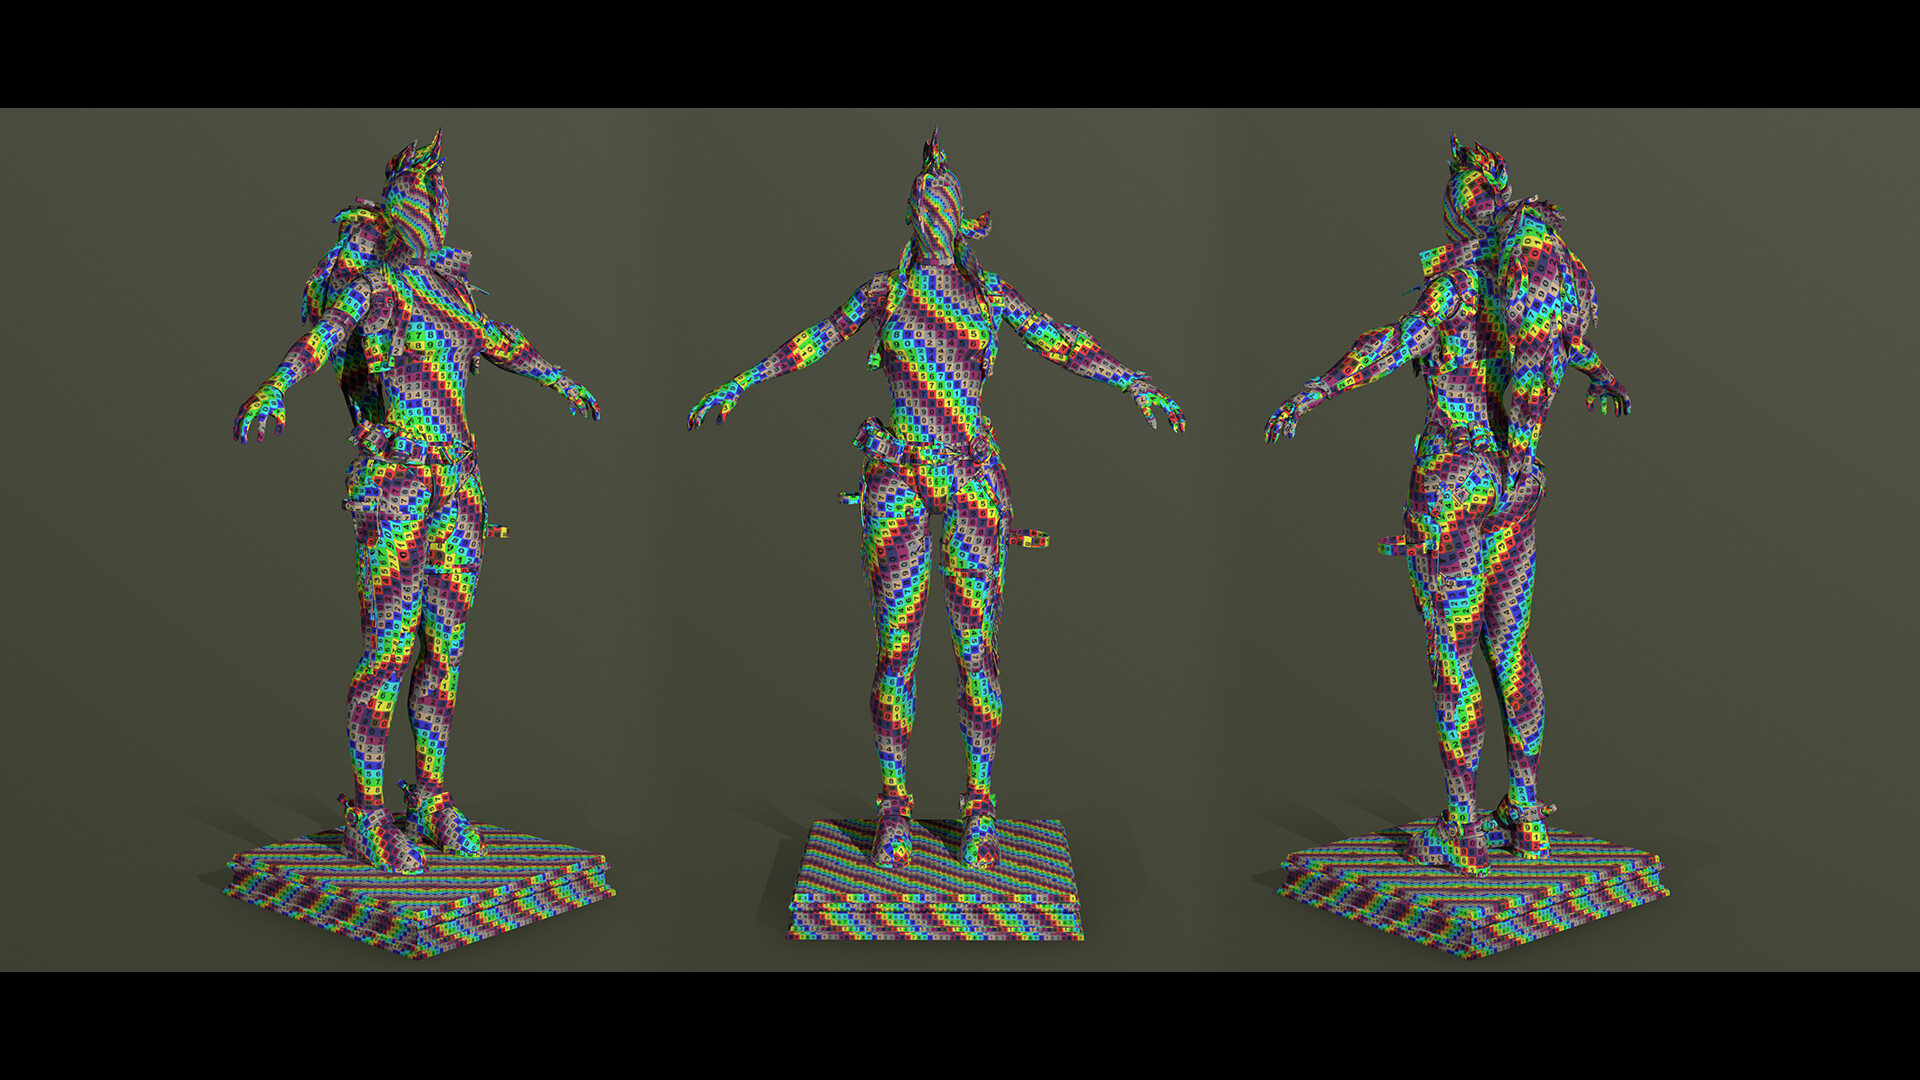 Model with a UV checker material applied